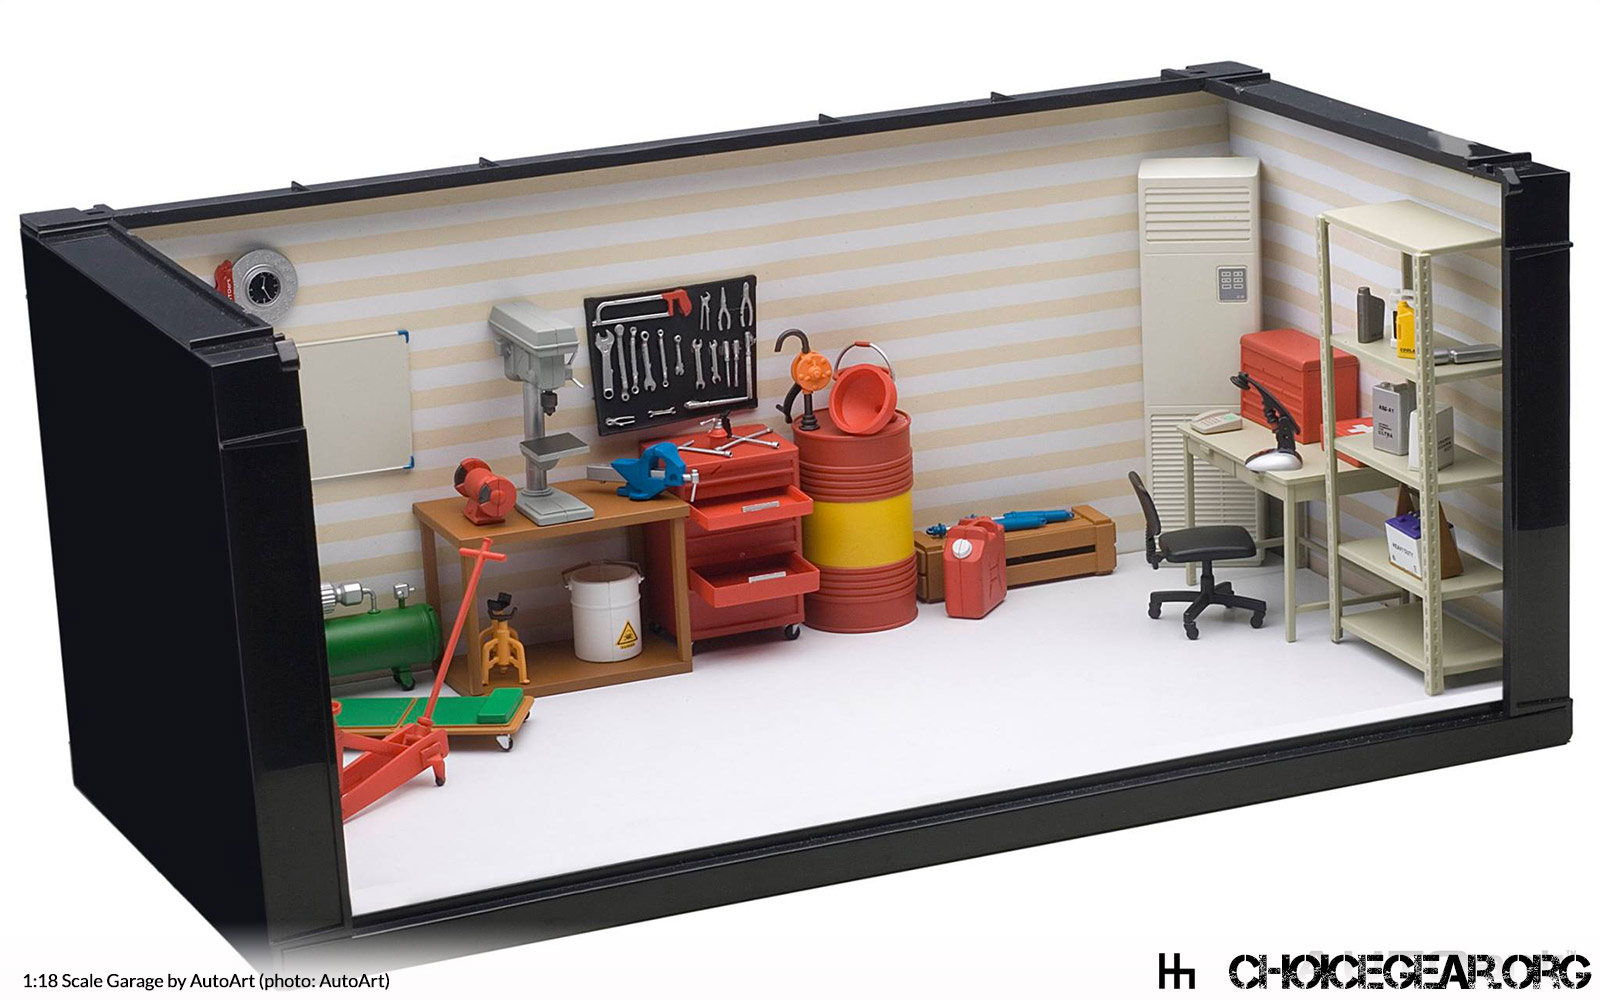 autoart 1 18 scale garage stuff 451 choice gear. Black Bedroom Furniture Sets. Home Design Ideas